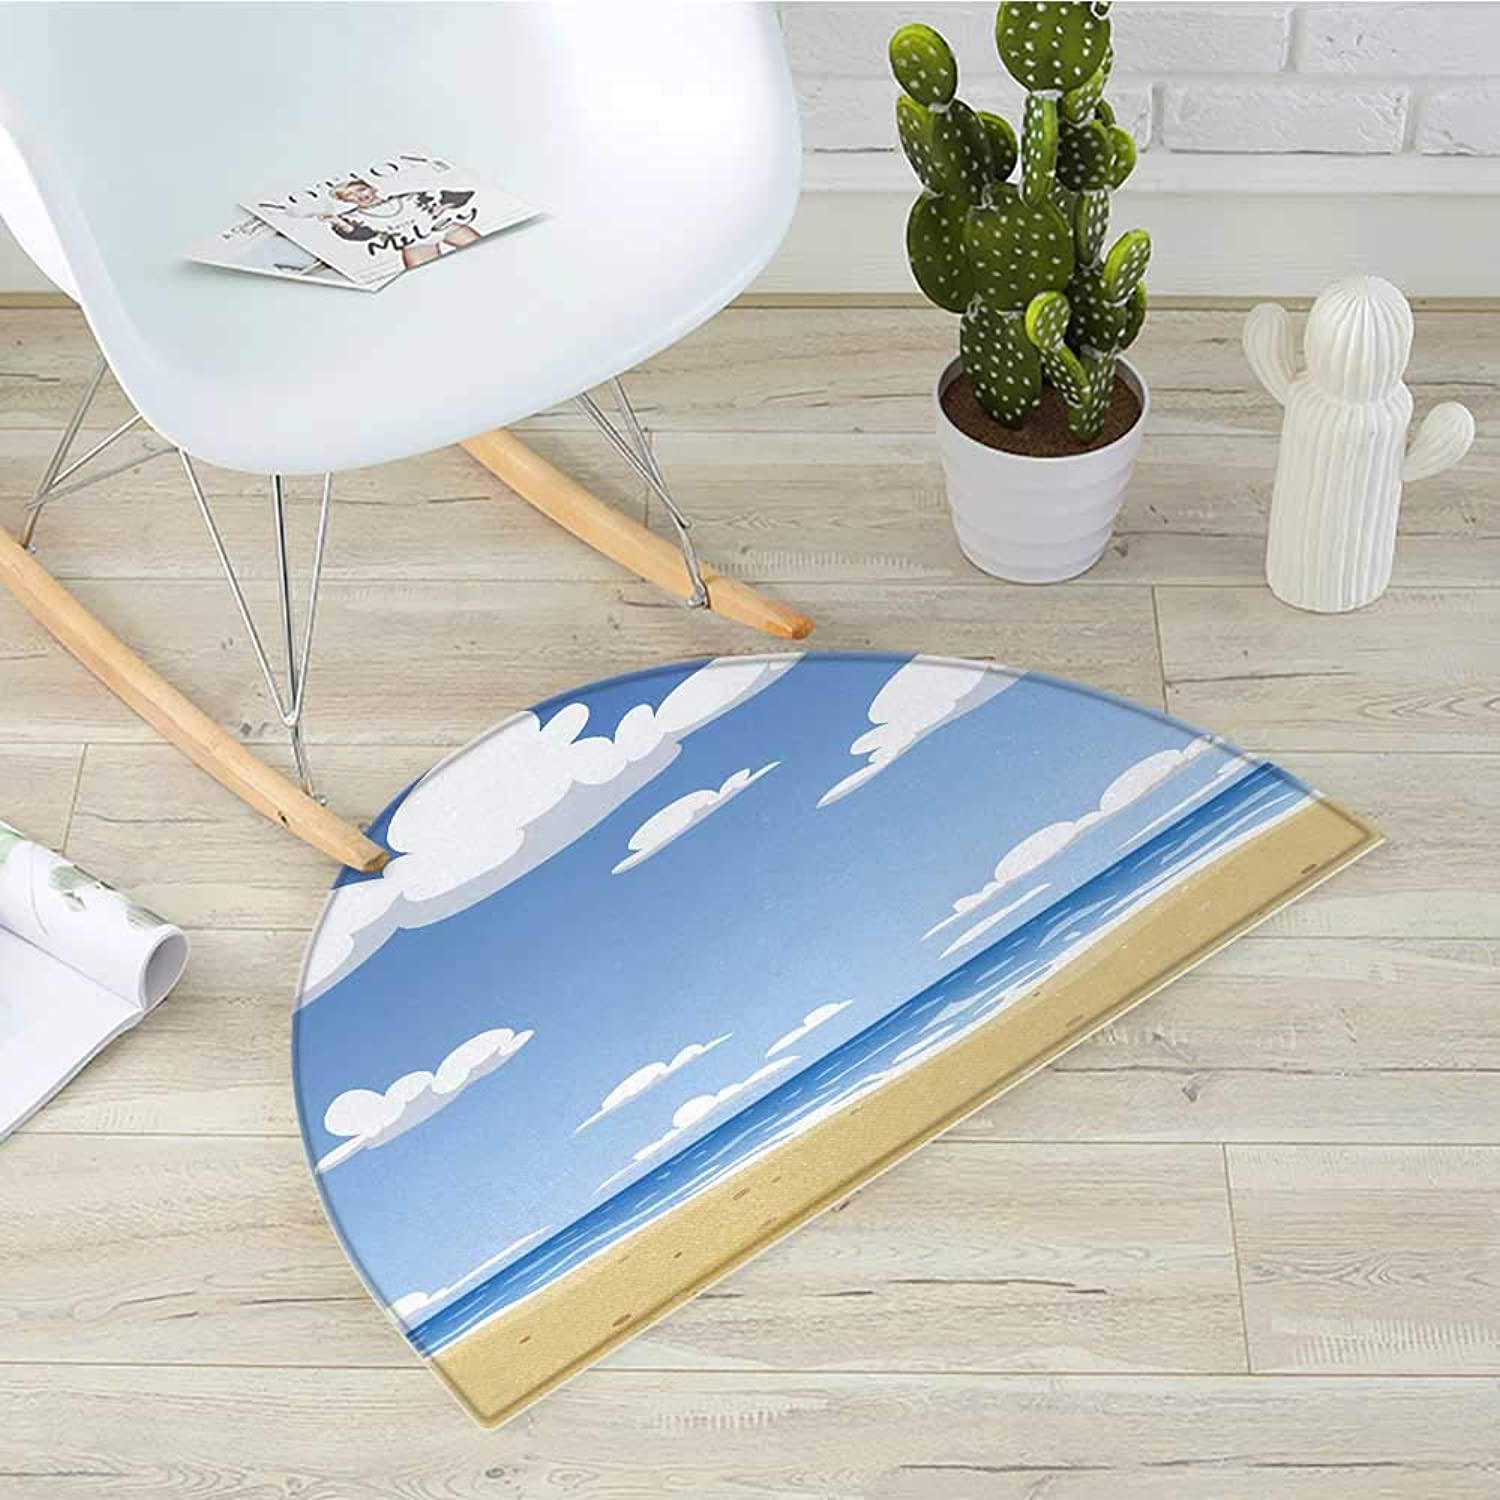 Beach Semicircle Doormat Cartoon Style Beach Pattern with Clouds Ocean and Seagull in Sky Pattern Halfmoon doormats H 31.5  xD 47.2  bluee White Sand Brown